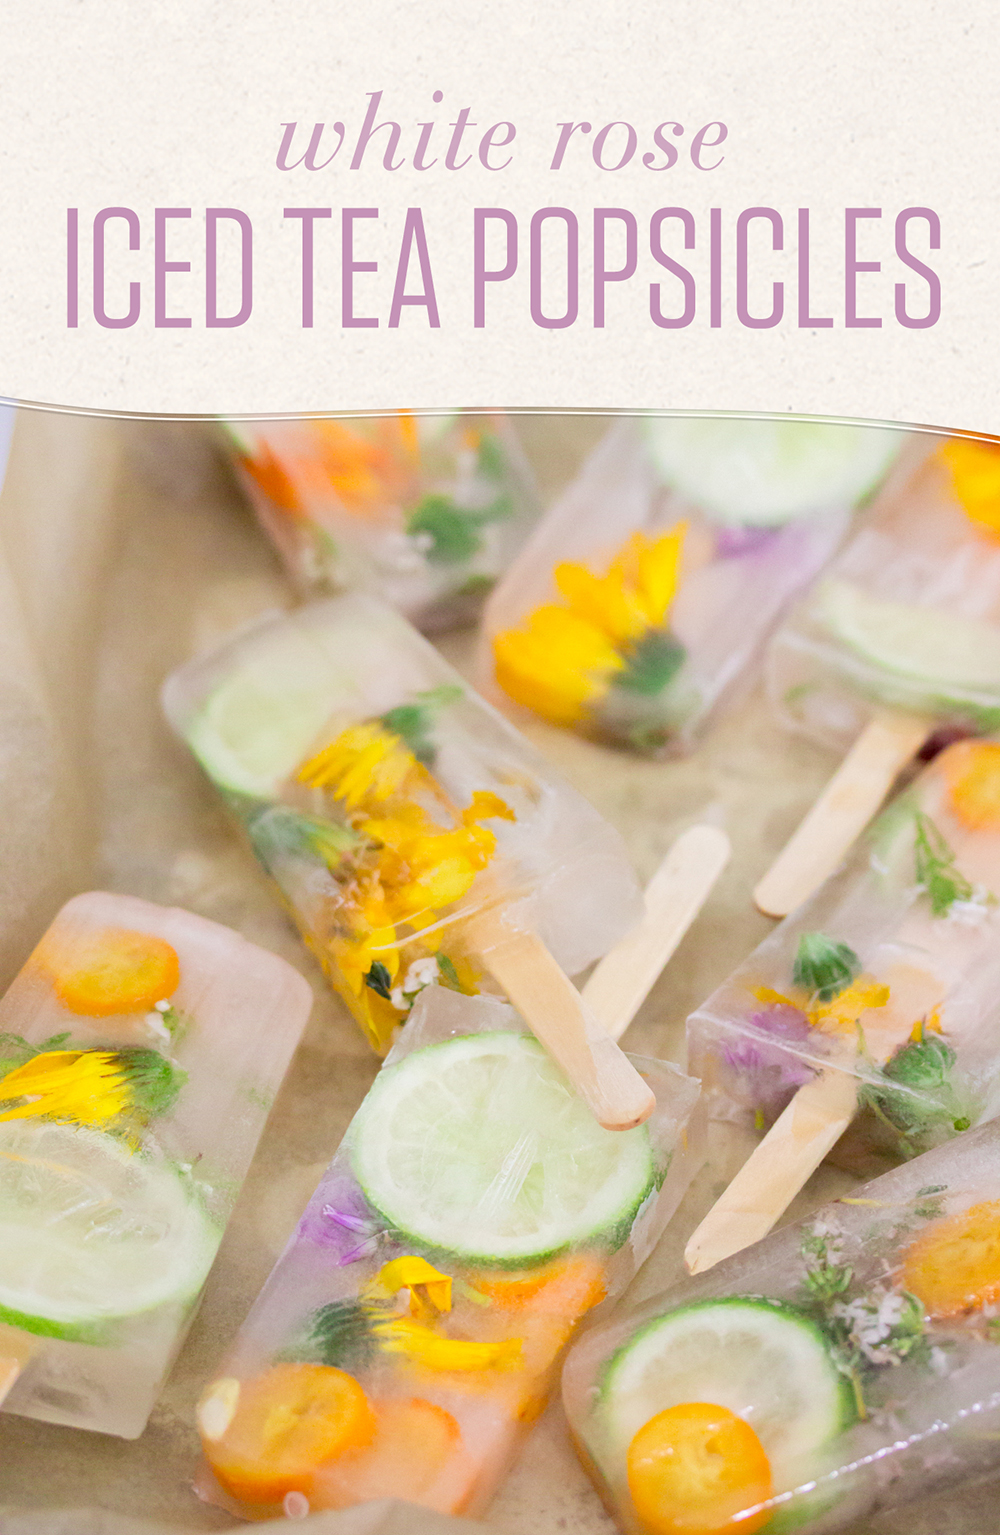 Ditch the sugar and additives! Make flavorful, beautiful popsicles at home with a cold-brewed White Rose tea base infused with fresh seasonal fruits.